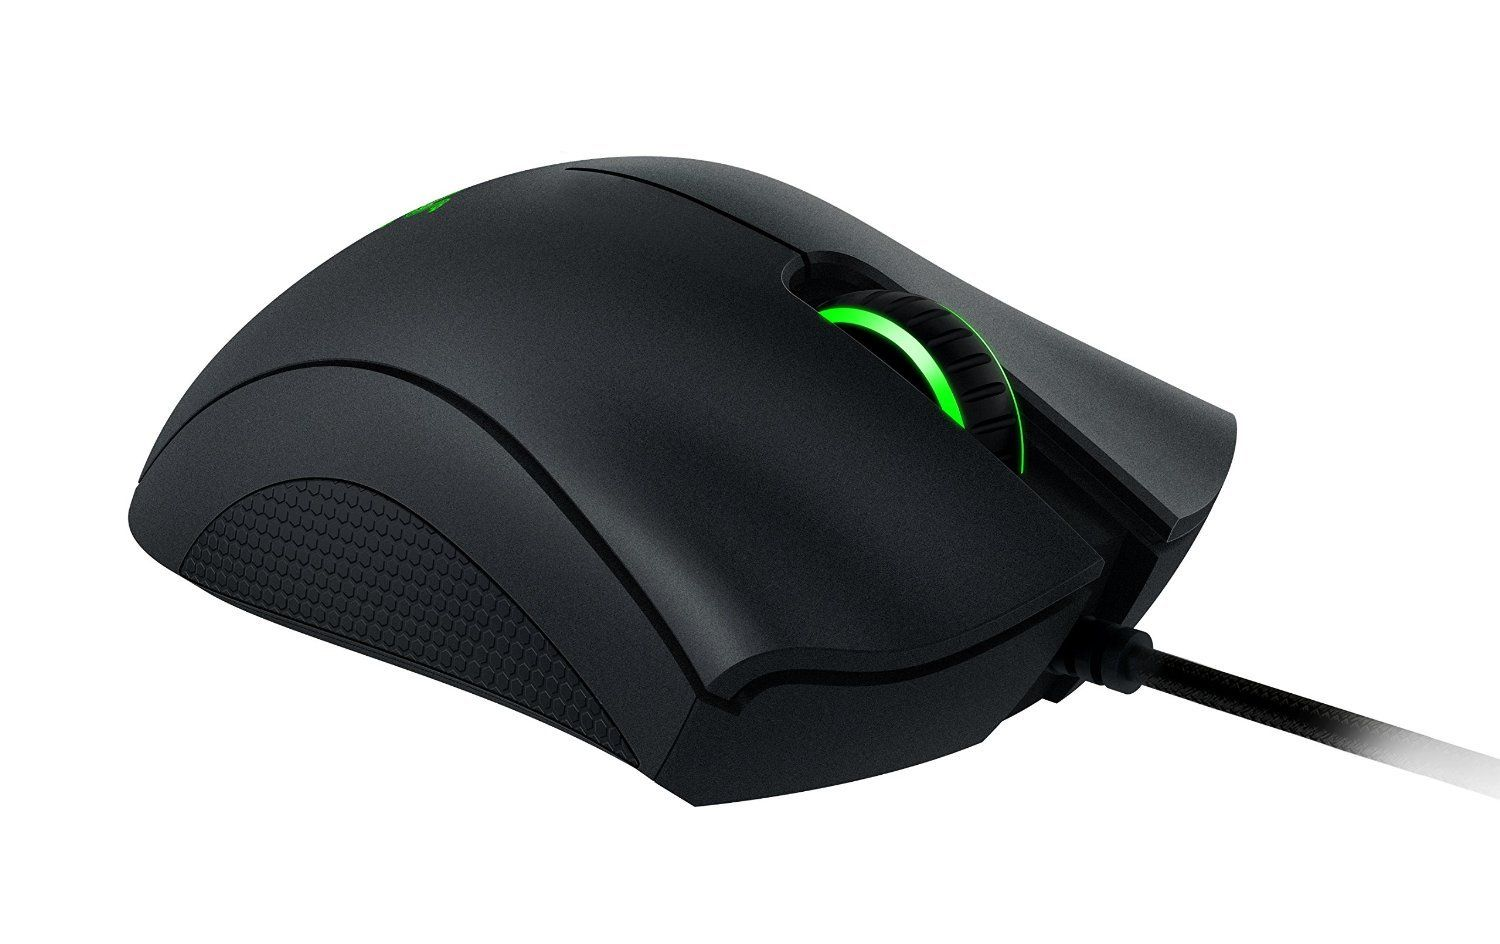 b8f54386590 Razer DeathAdder Chroma Multi-Color Ergonomic Gaming Mouse (Certified  Refurbished),#Multi, #Color, #Chroma, #Razer